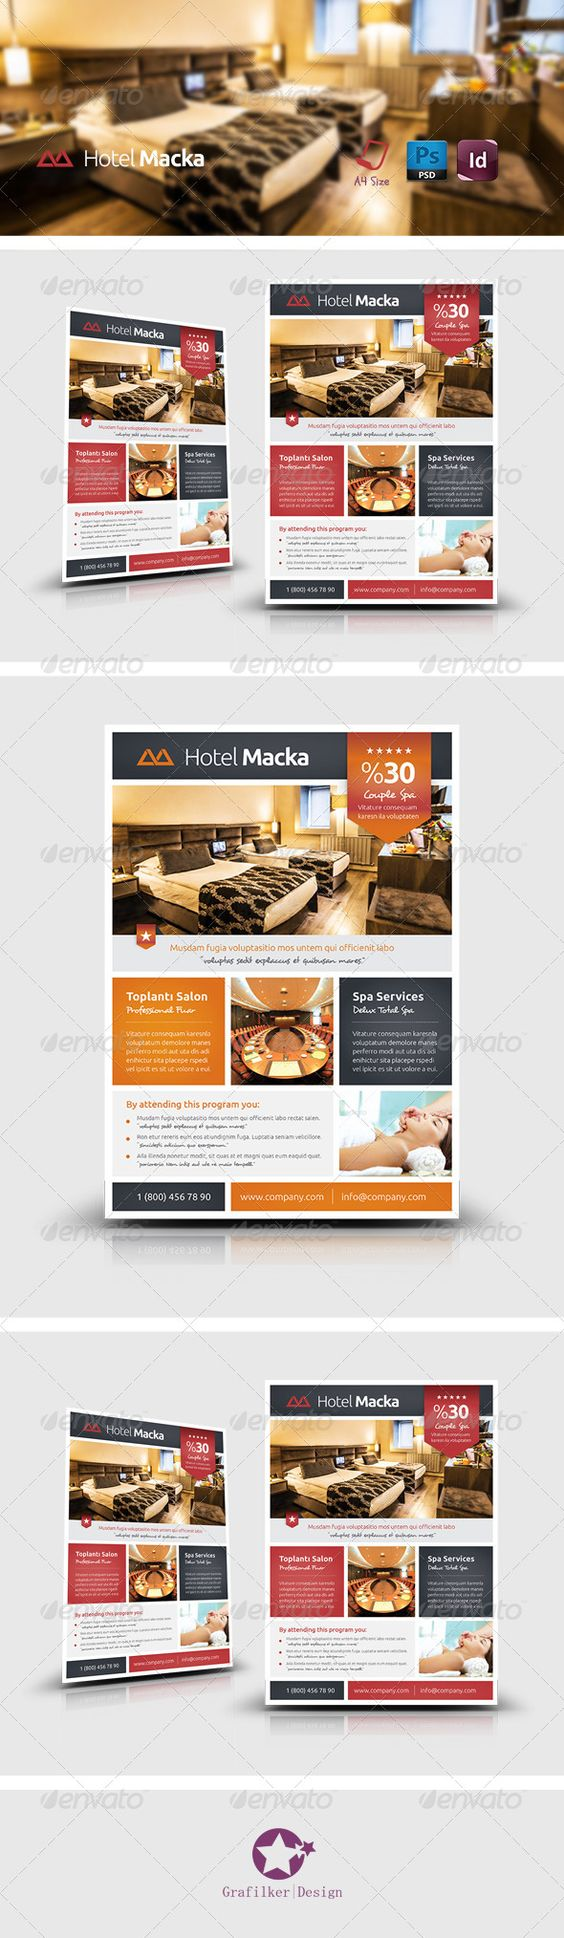 hotel flyer templates flyer template hotels and flyers hotel flyer templates graphicriver